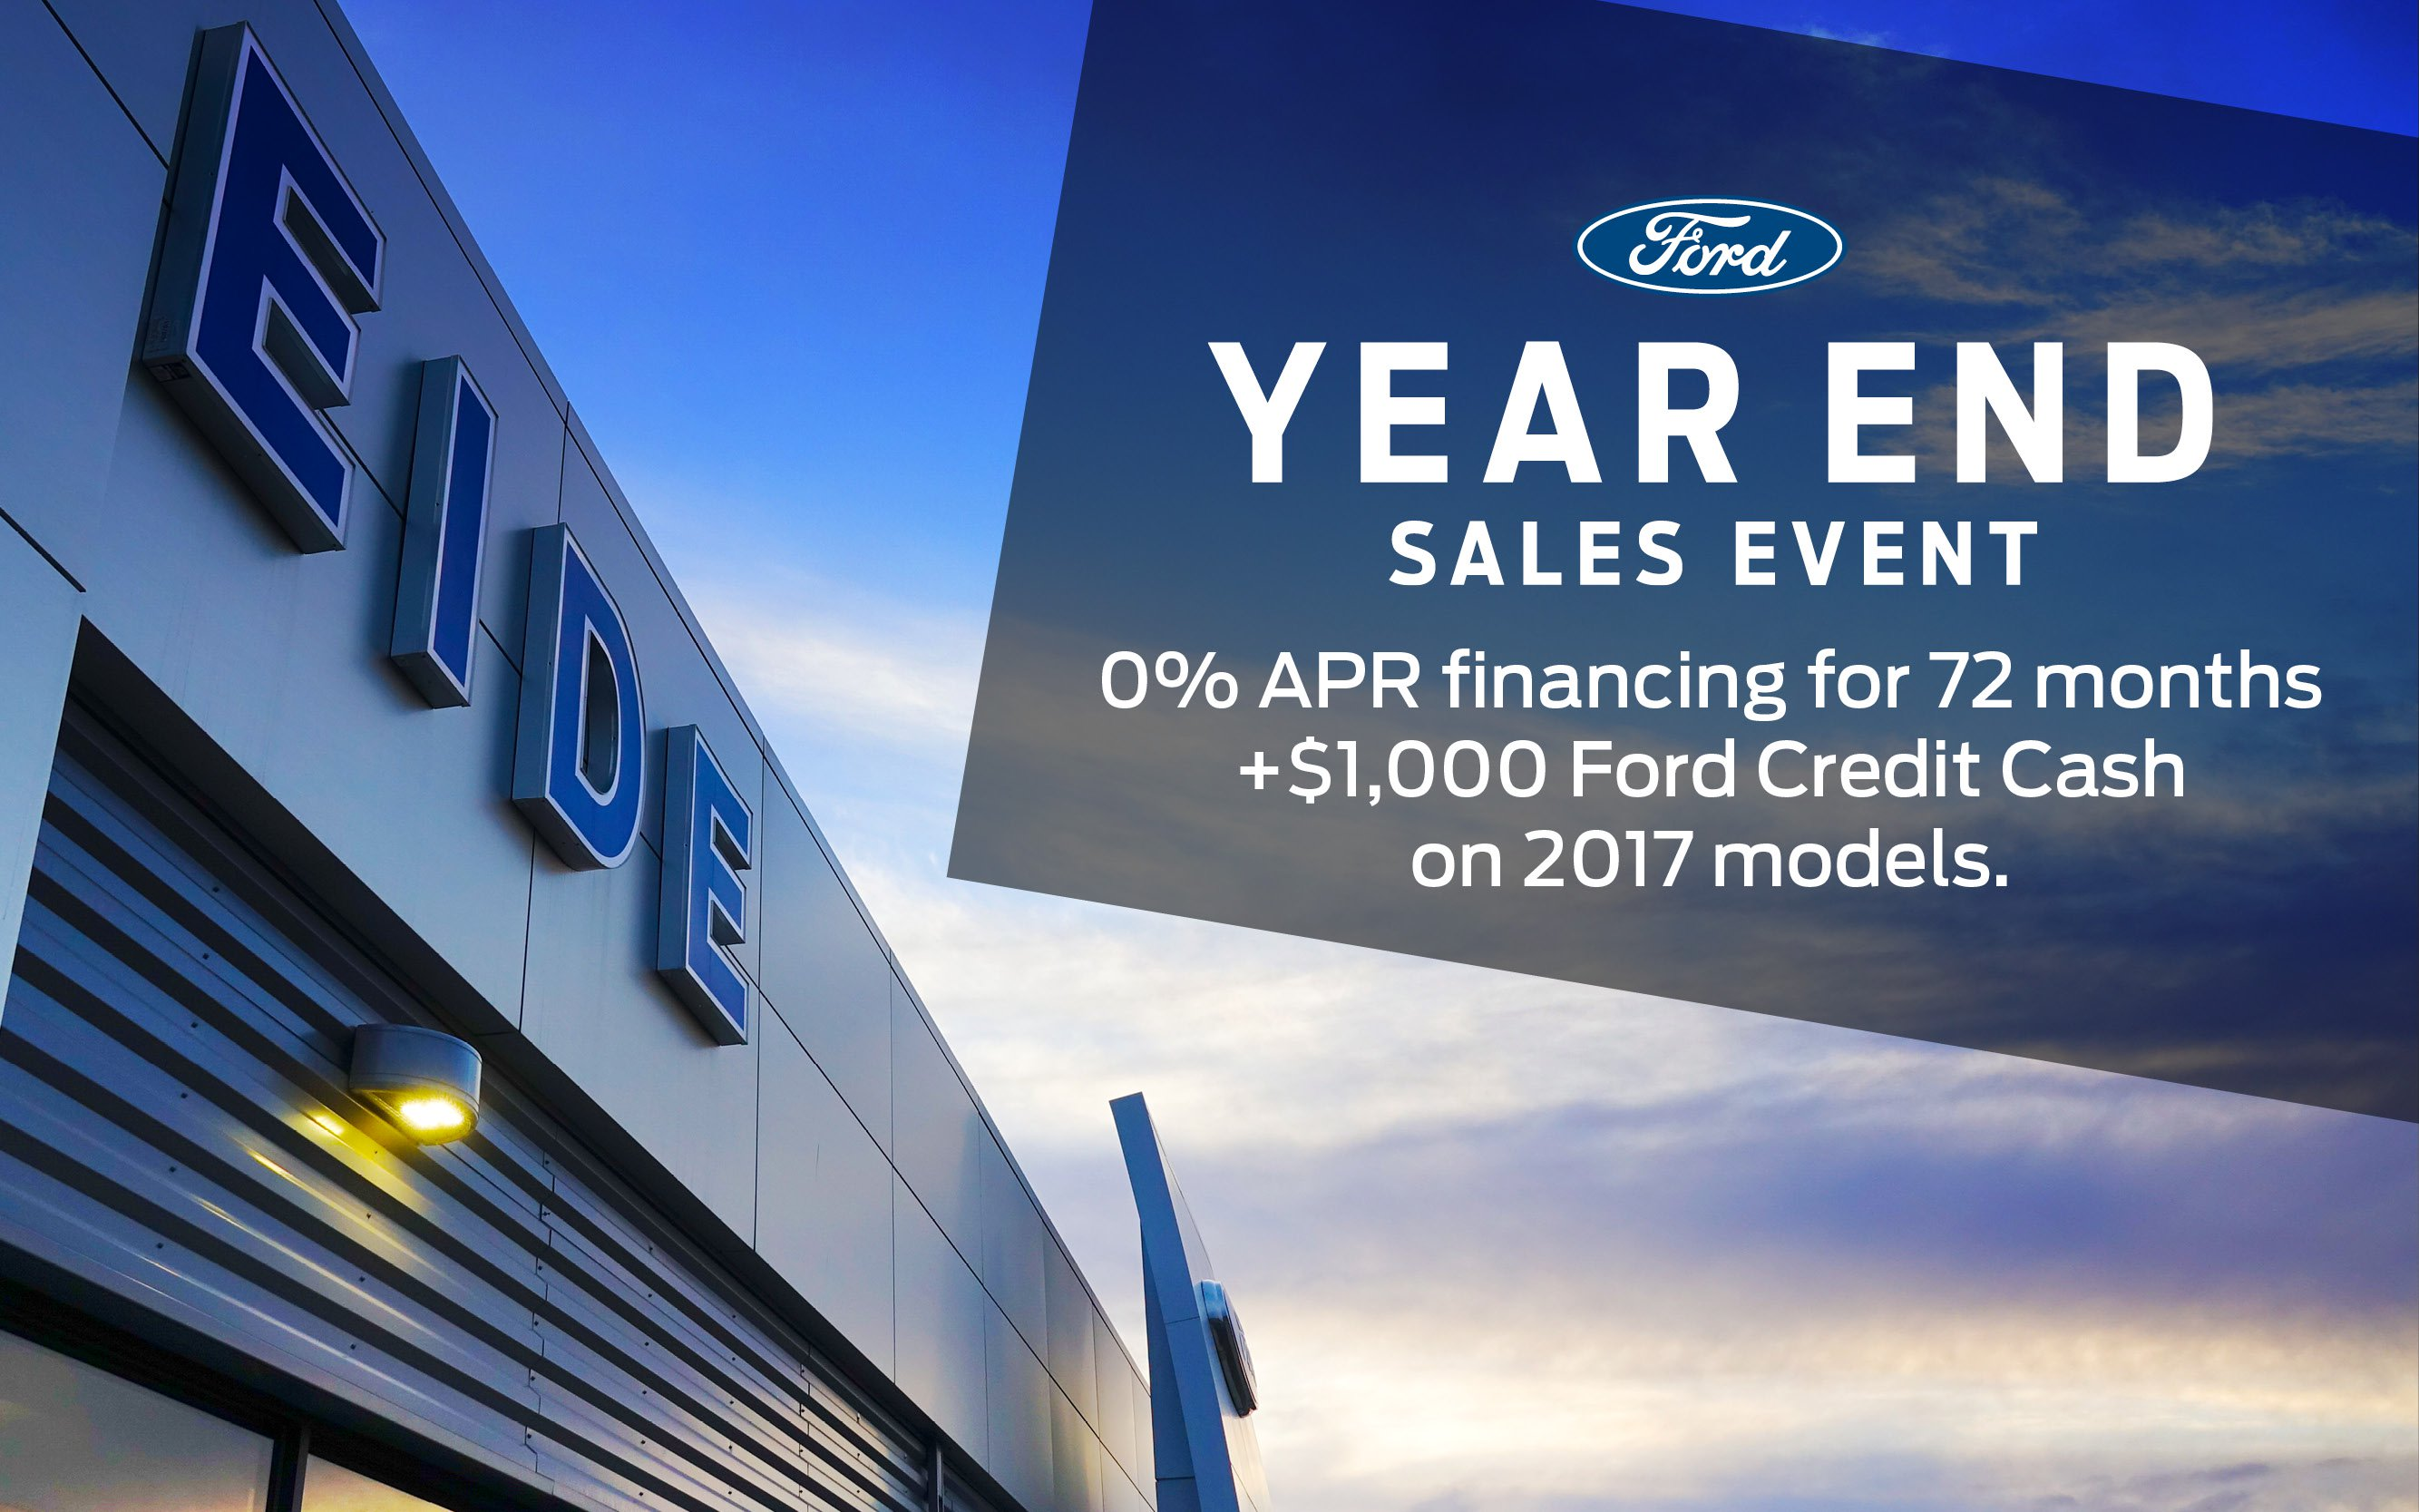 Eide Ford 2017 Year End Sales Event 2.jpg